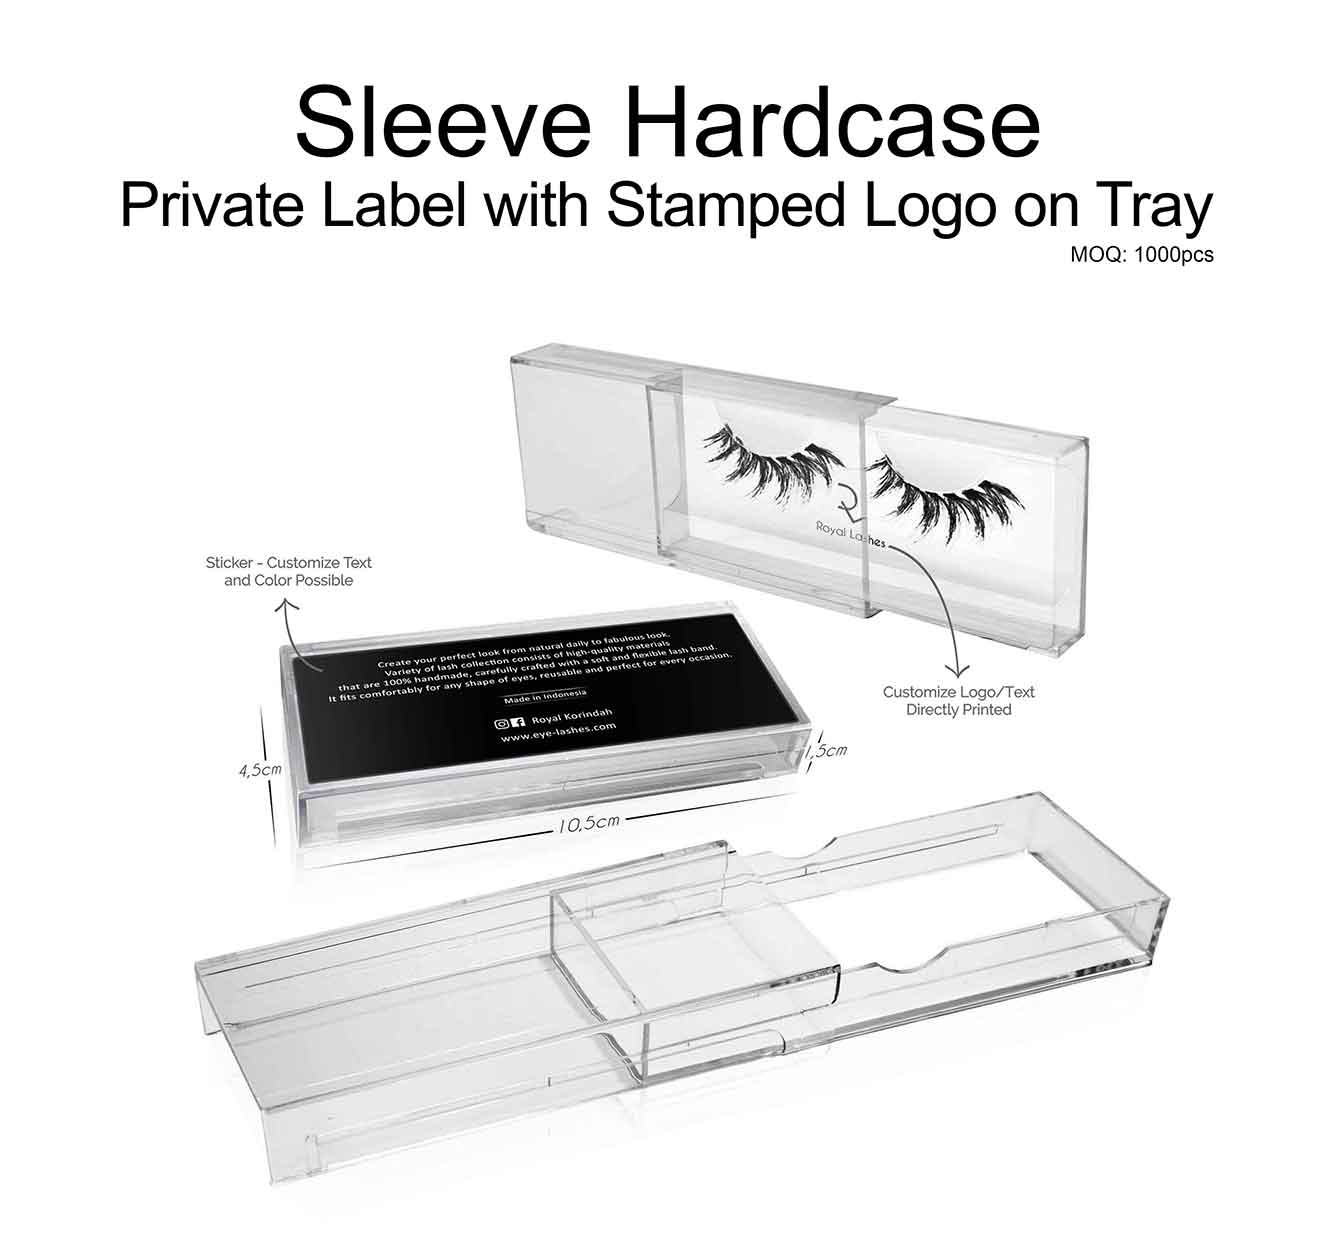 Sleeve-Hardcase-Private-Label-with-Stamped-Logo-on-Tray